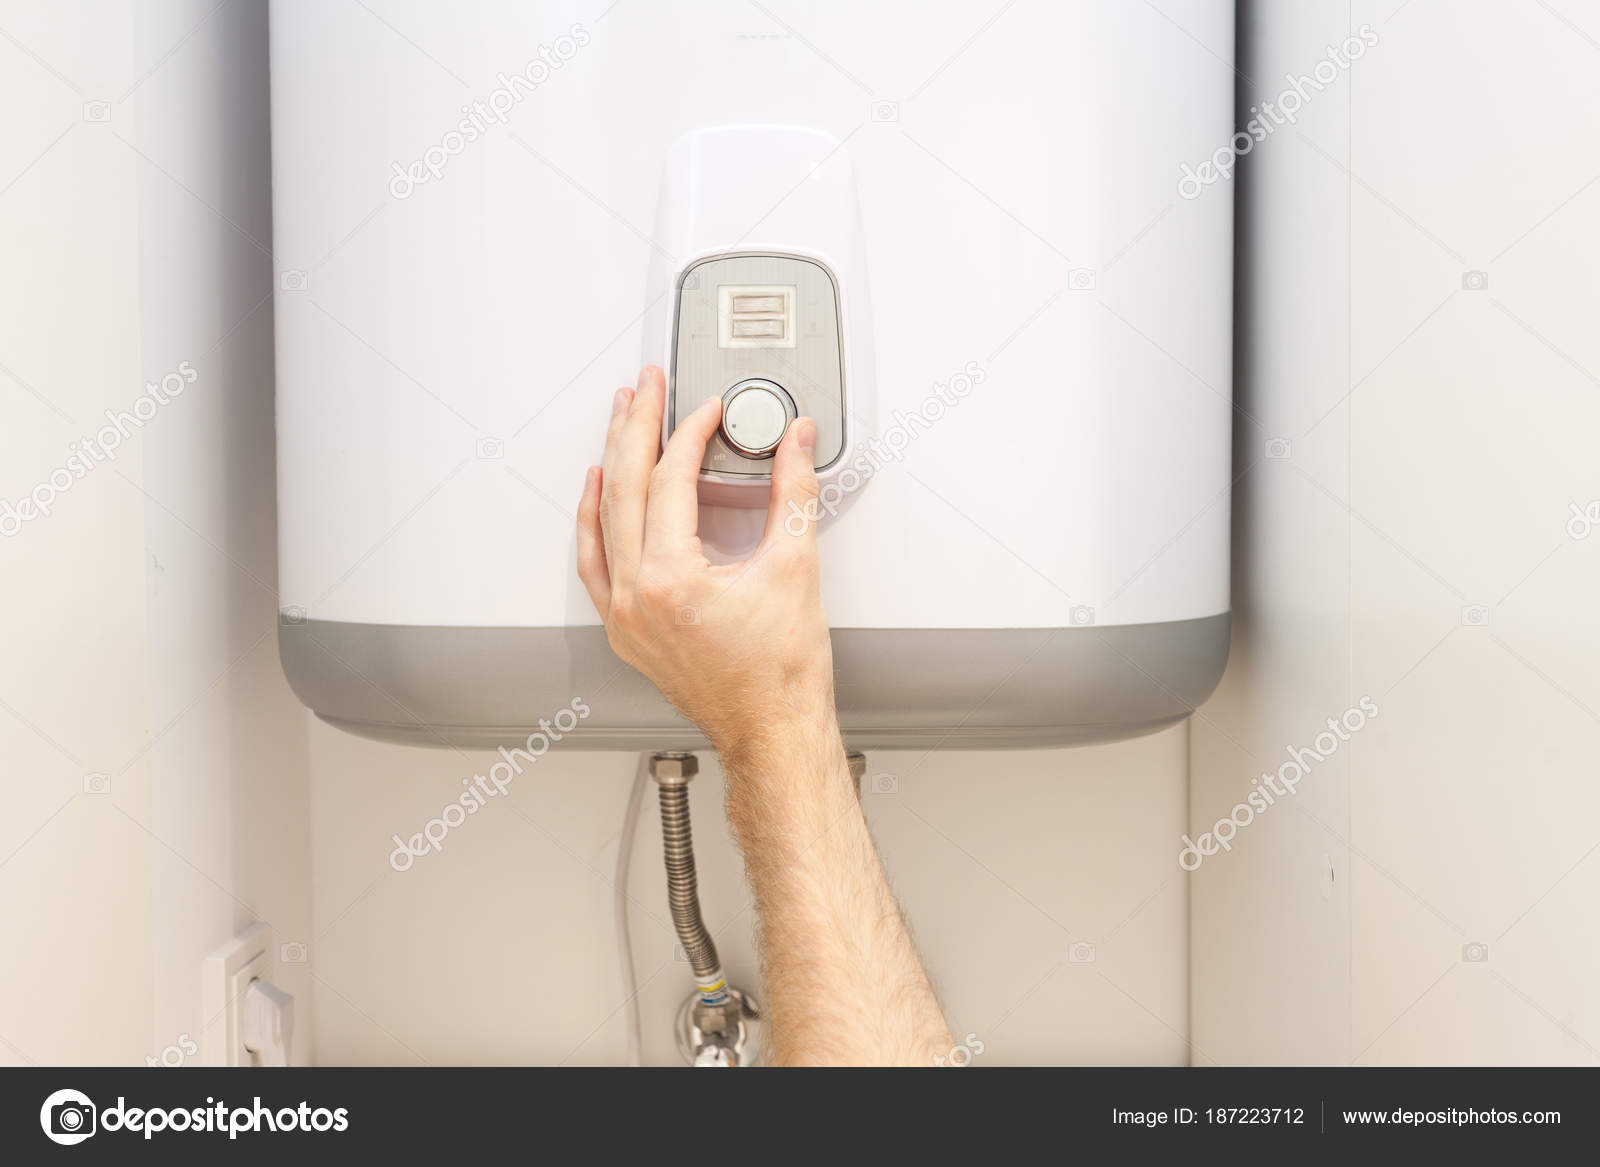 Closein Boiler Close Man Hands Setting Temperature Water Electric Boiler Stock